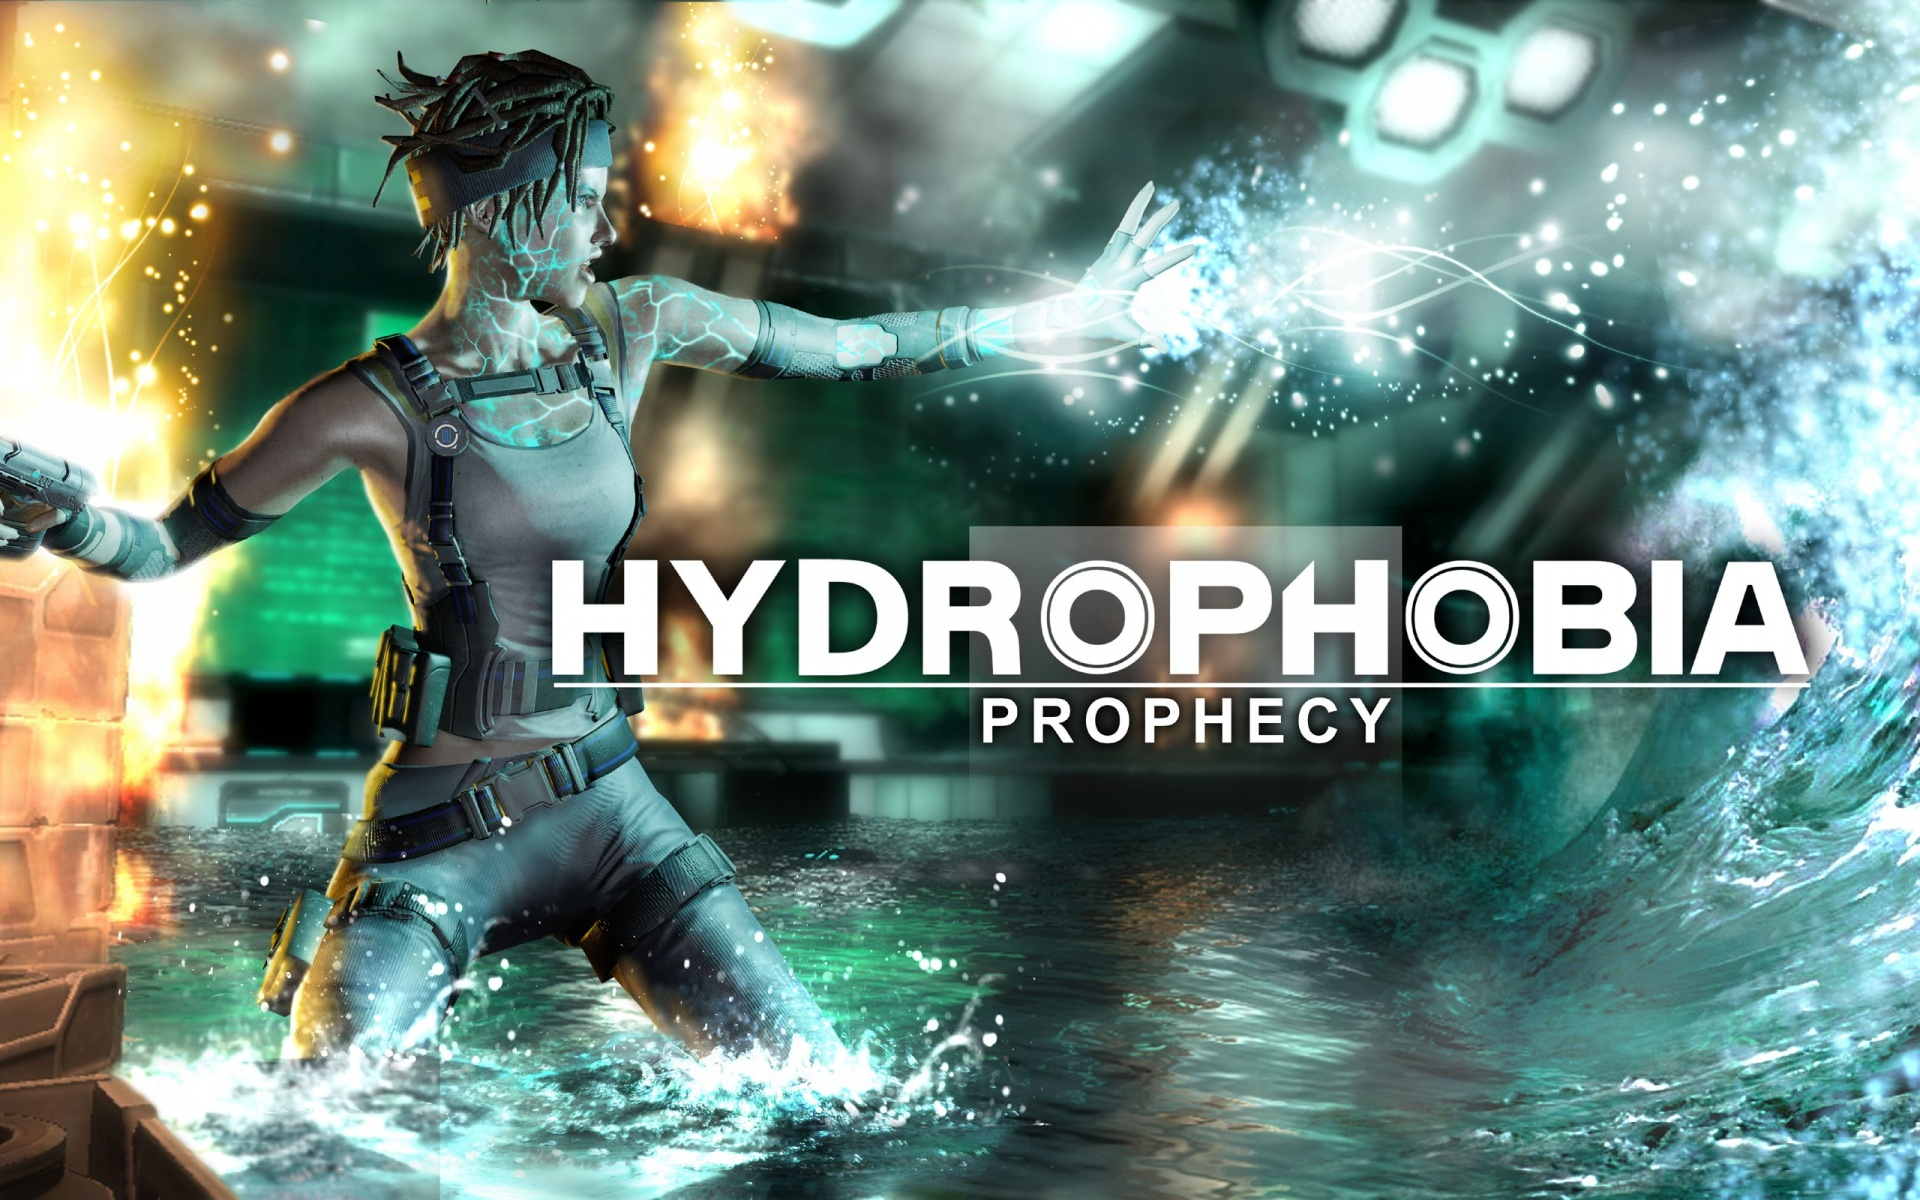 Hydrophobia Prophecy HD Wallpaper Background Image 1920x1200 1920x1200